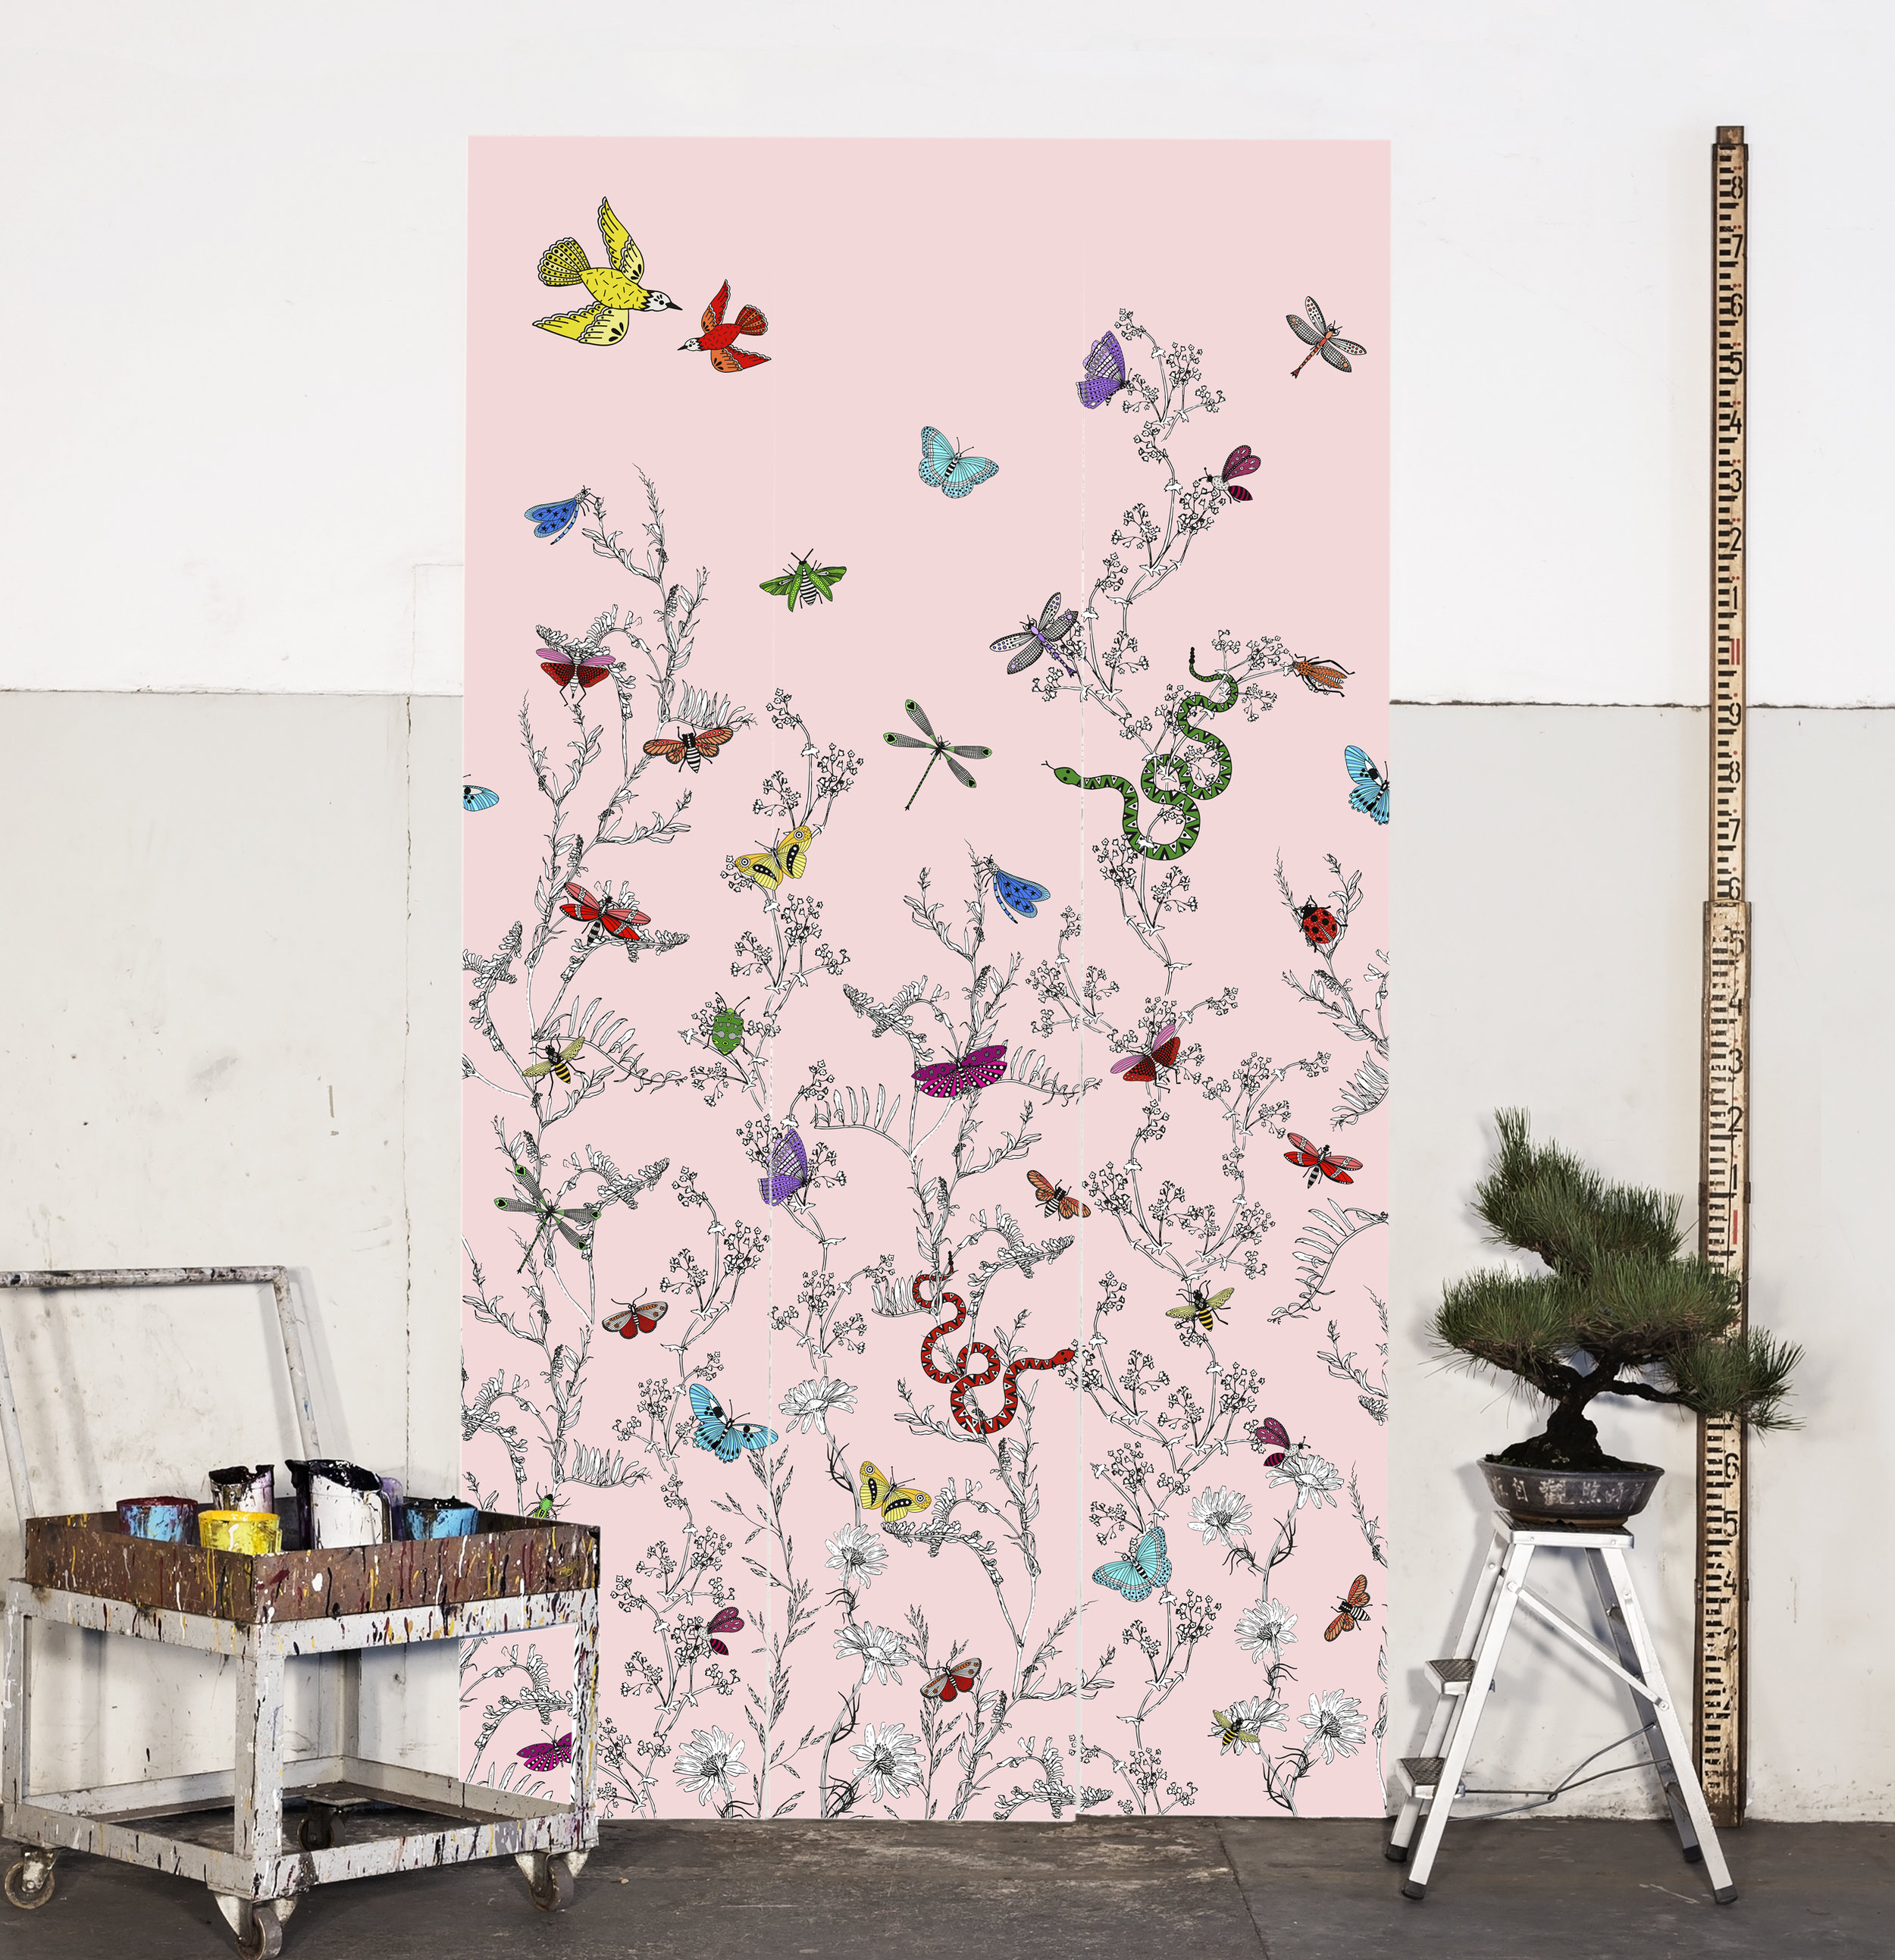 as020_bugs-painel_amb-rosa.jpg